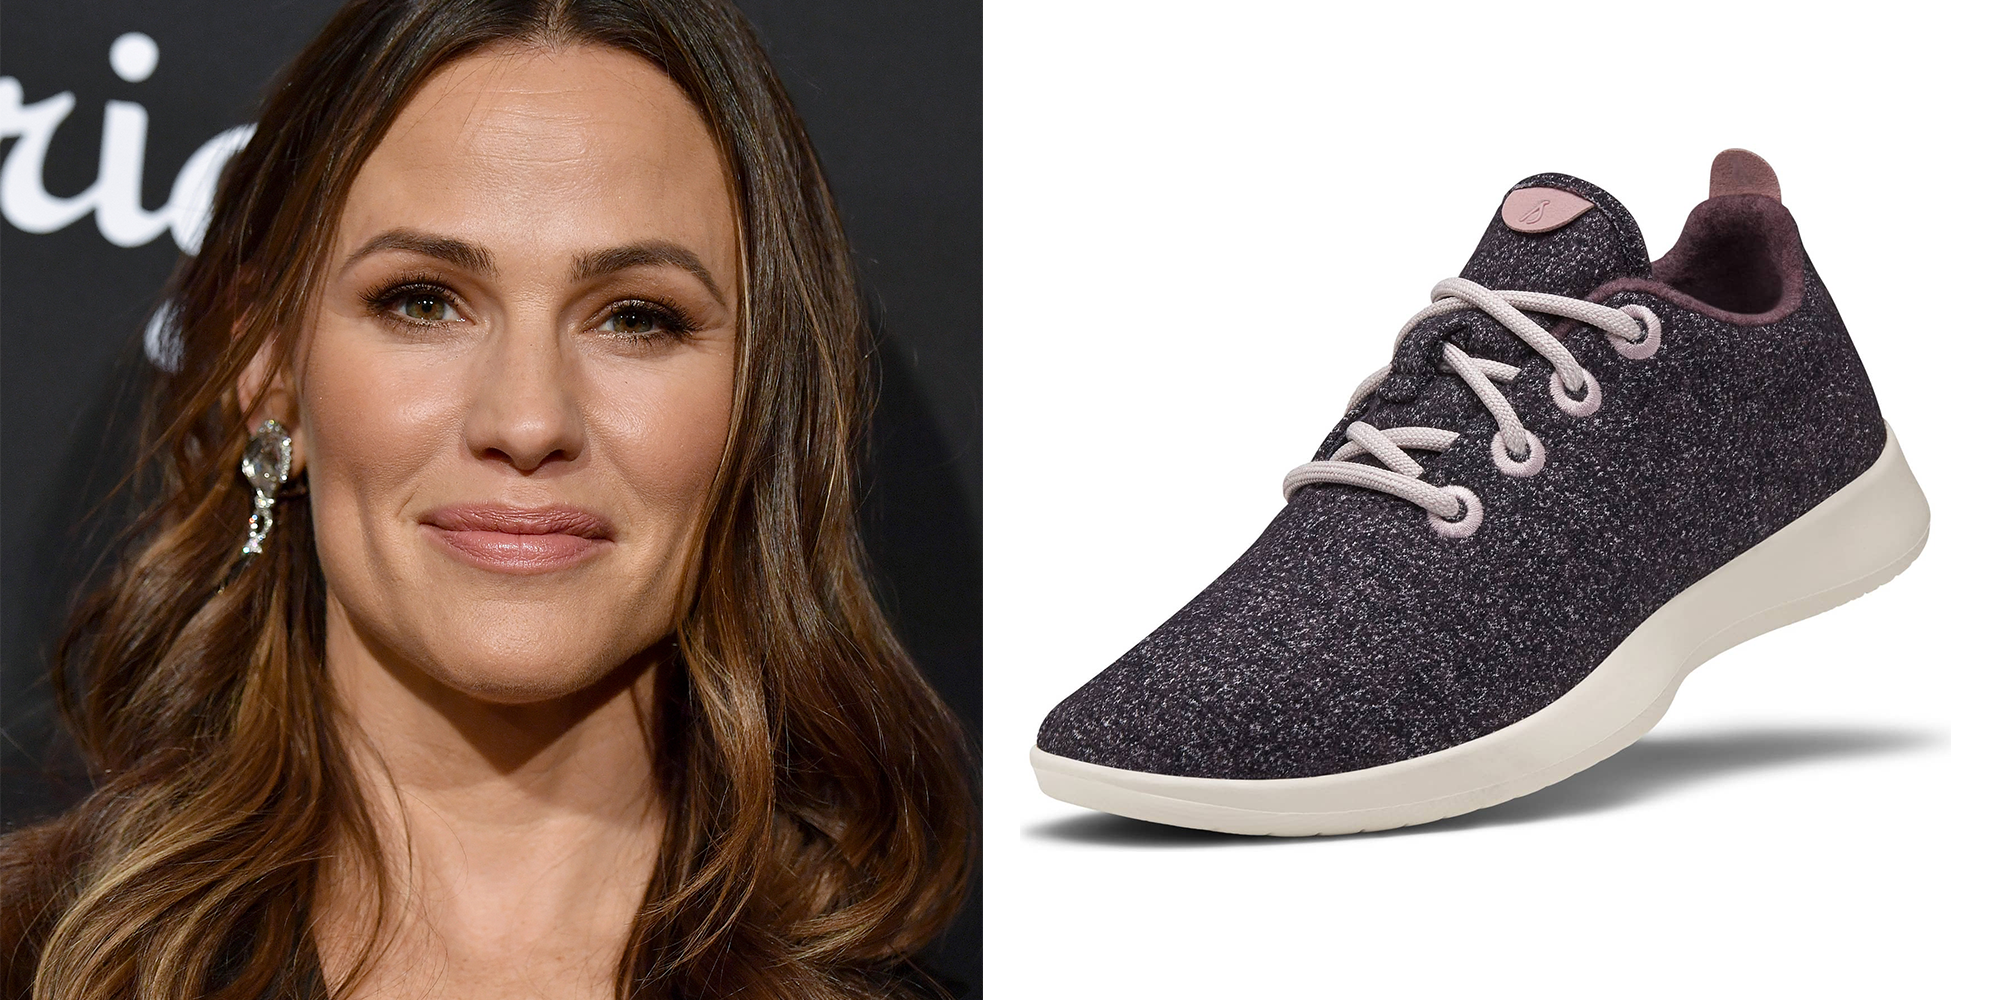 Allbirds Are the Comfy, Machine-Washable Sneakers Celebrities Are Obsessed With